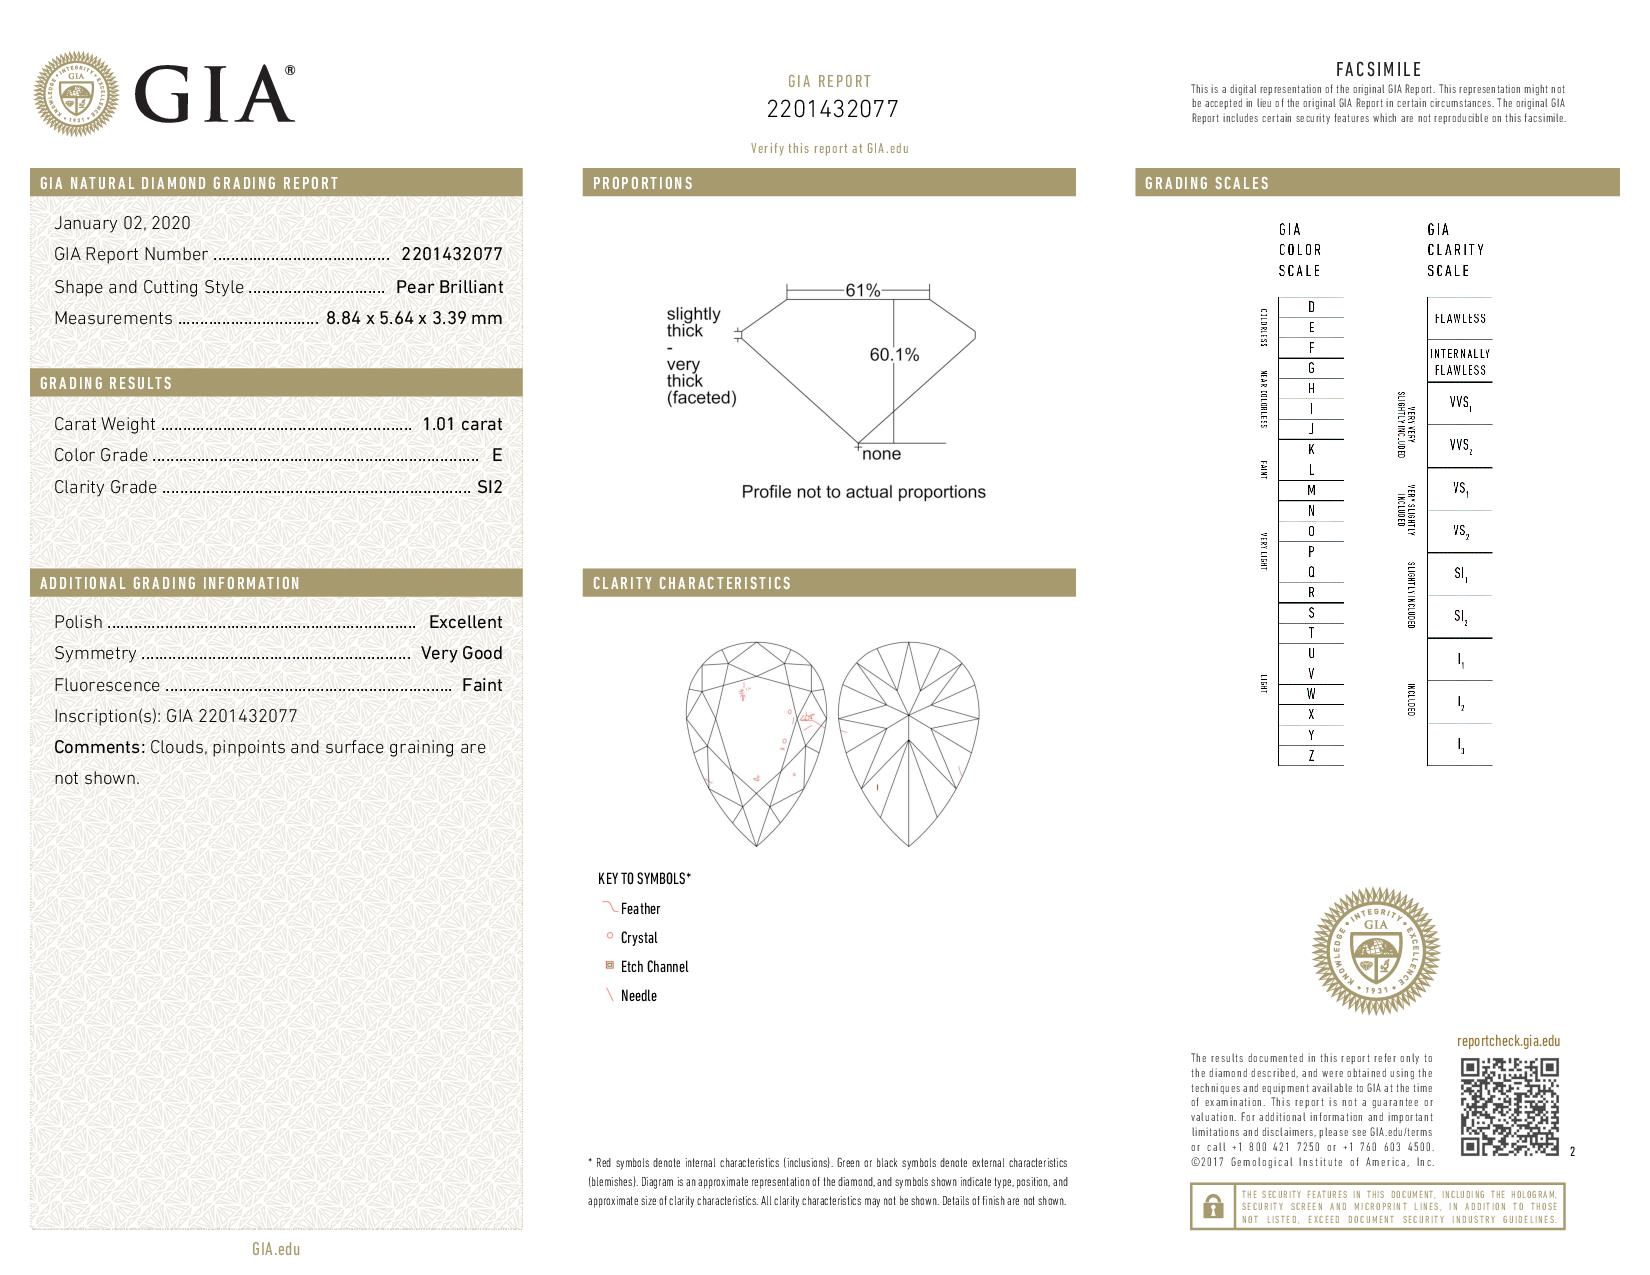 This is a 1.01 carat pear shape, E color, SI2 clarity natural diamond accompanied by a GIA grading report.